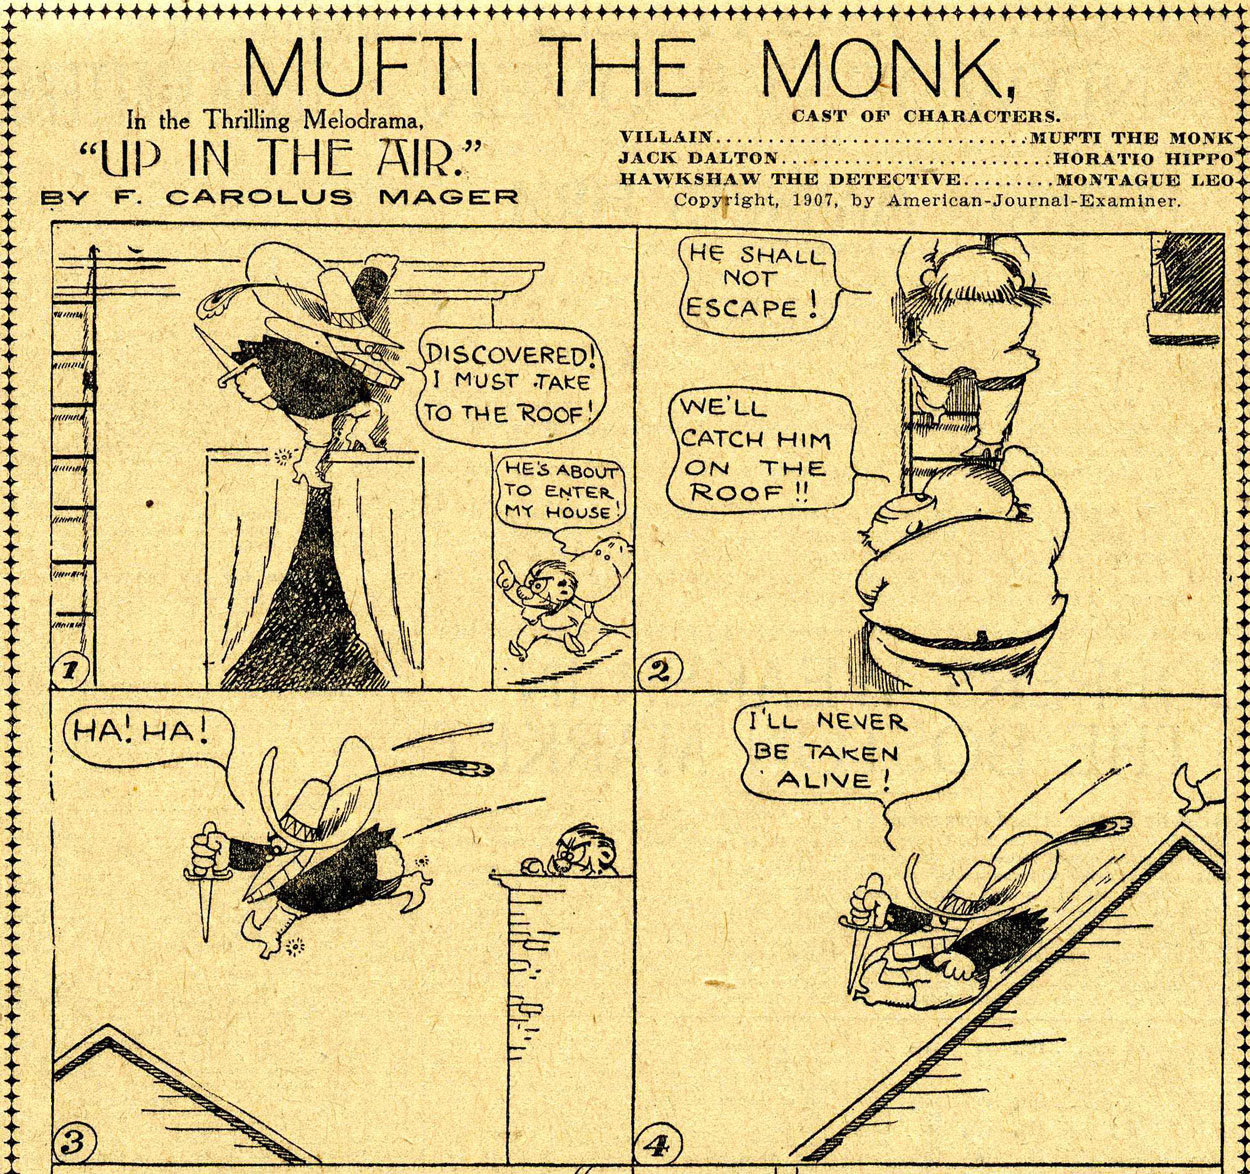 Mufti the Monk (in the San Francisco Examiner, 25/10/1907) by Gus Mager